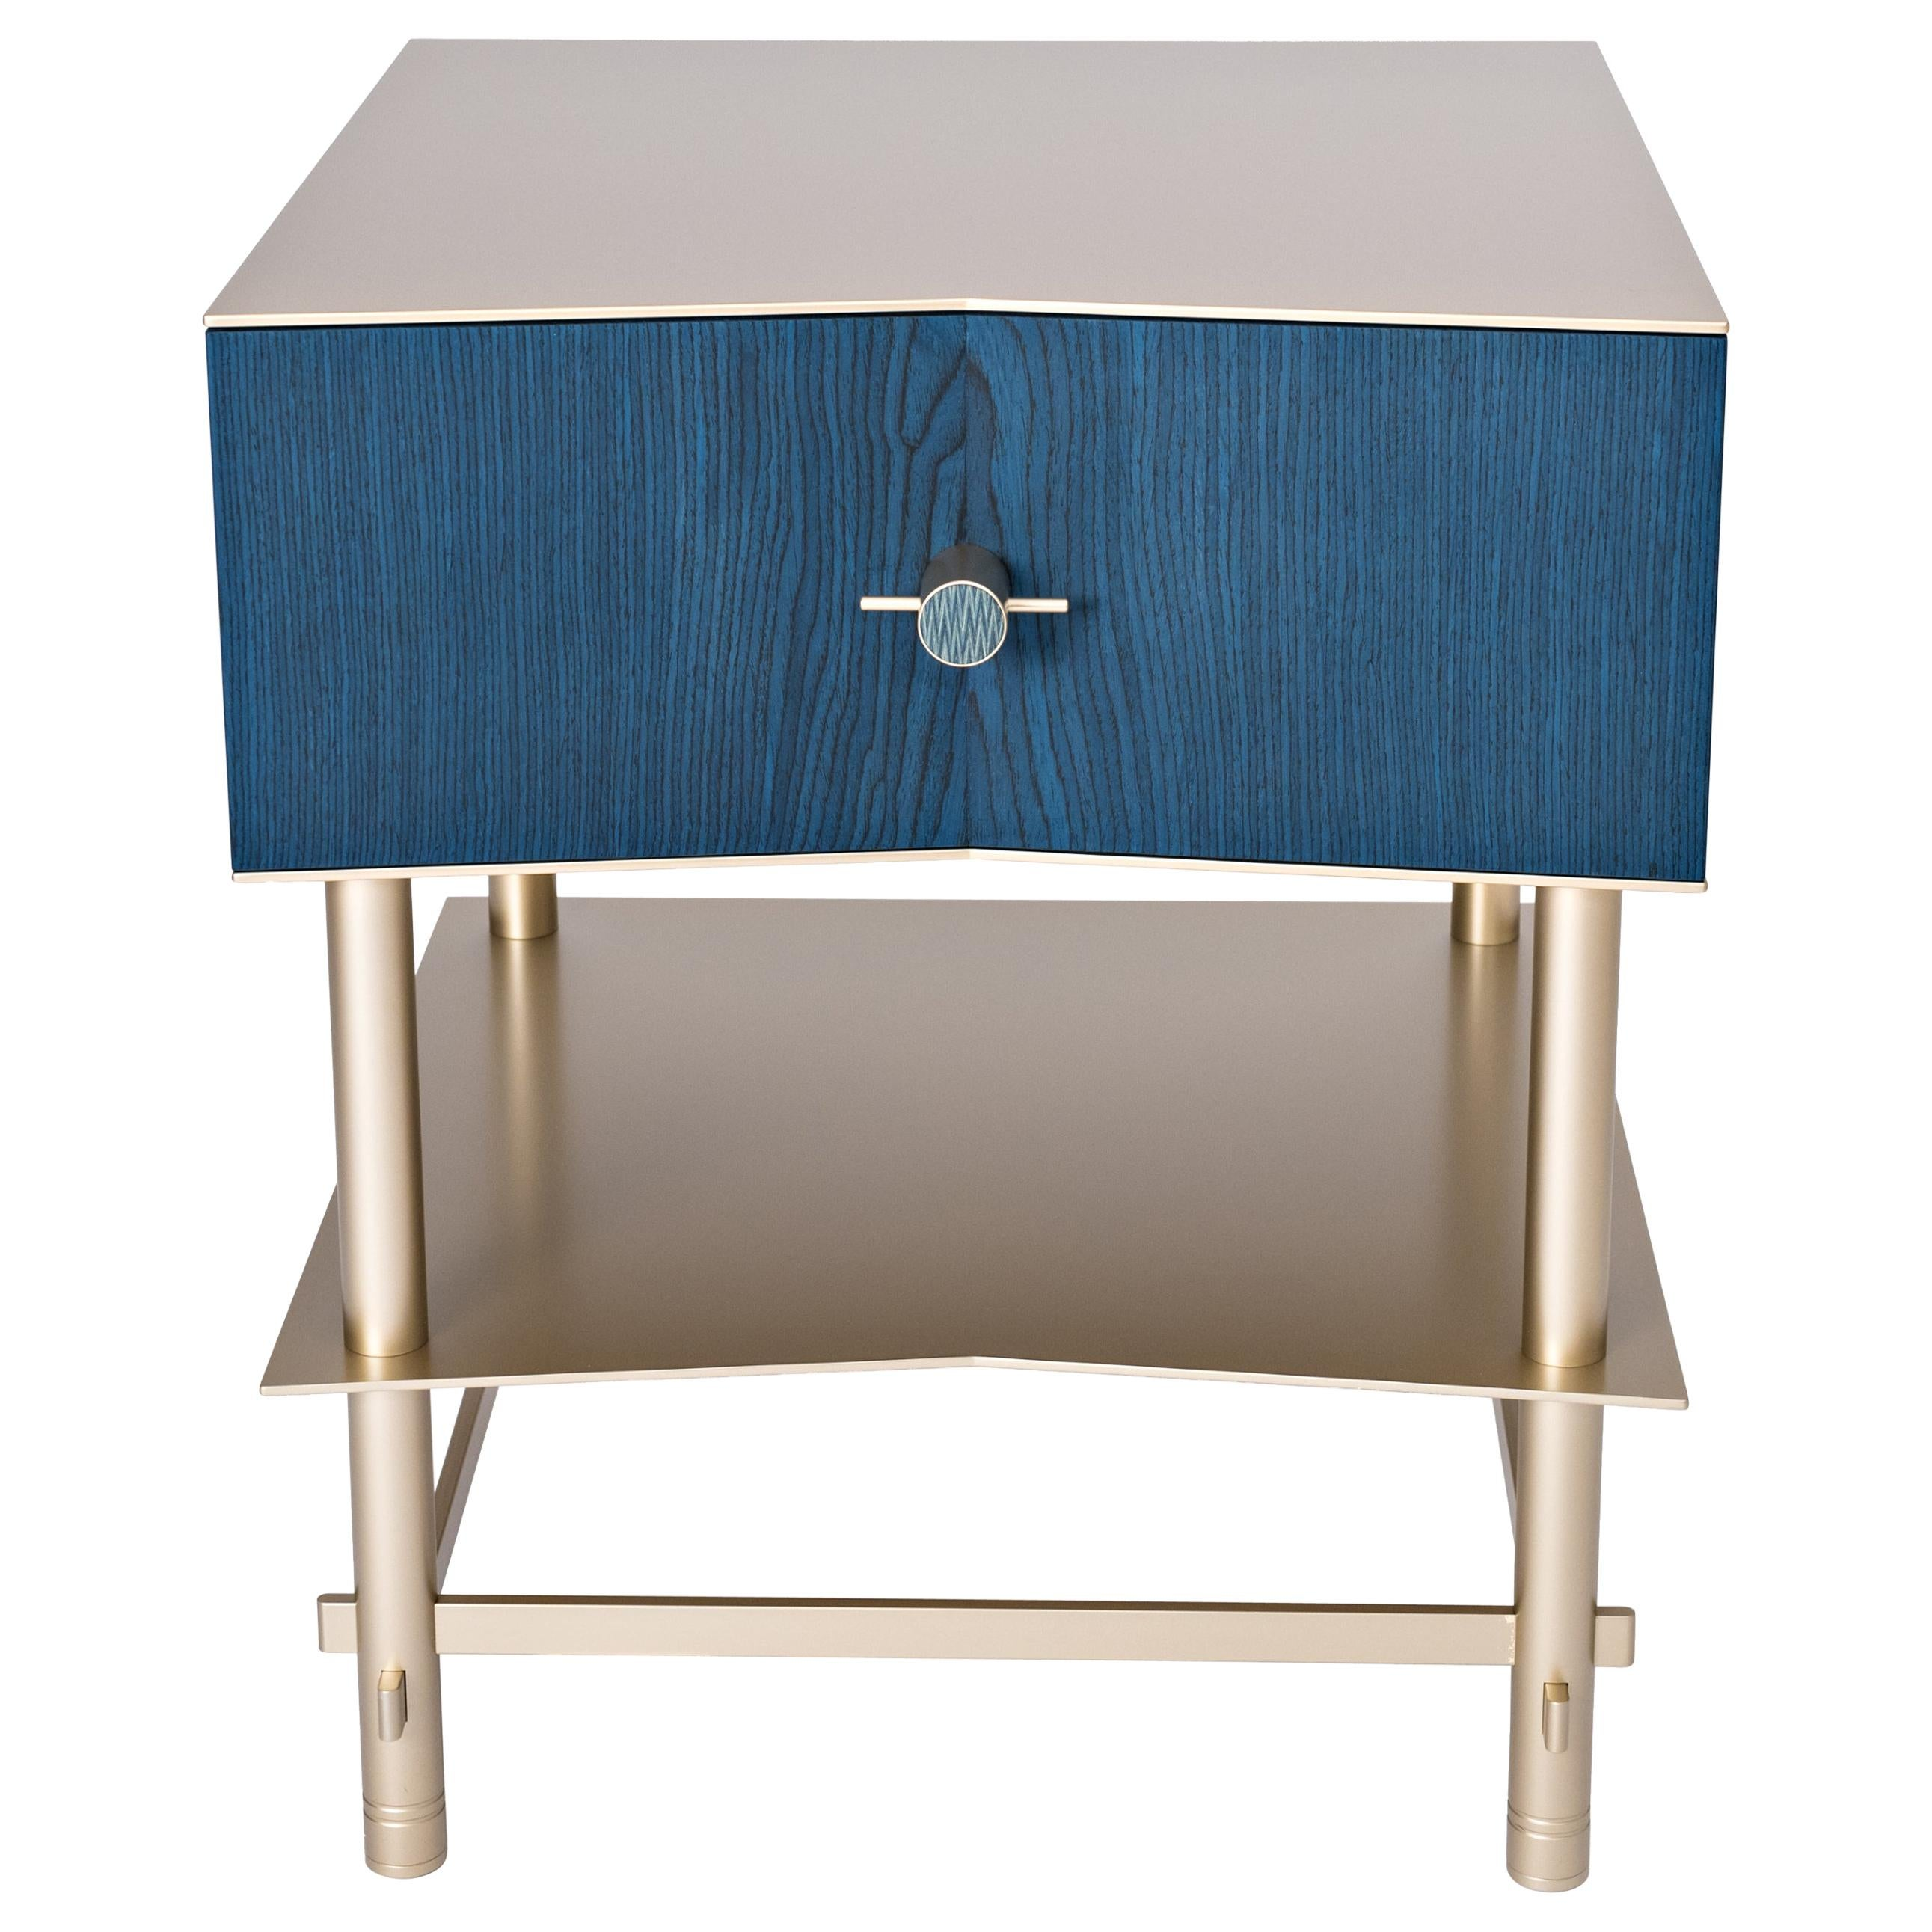 Lali Luxury Coffee/Bed Side Table, Metal Structure Jewel Handles & Wooden Drawer